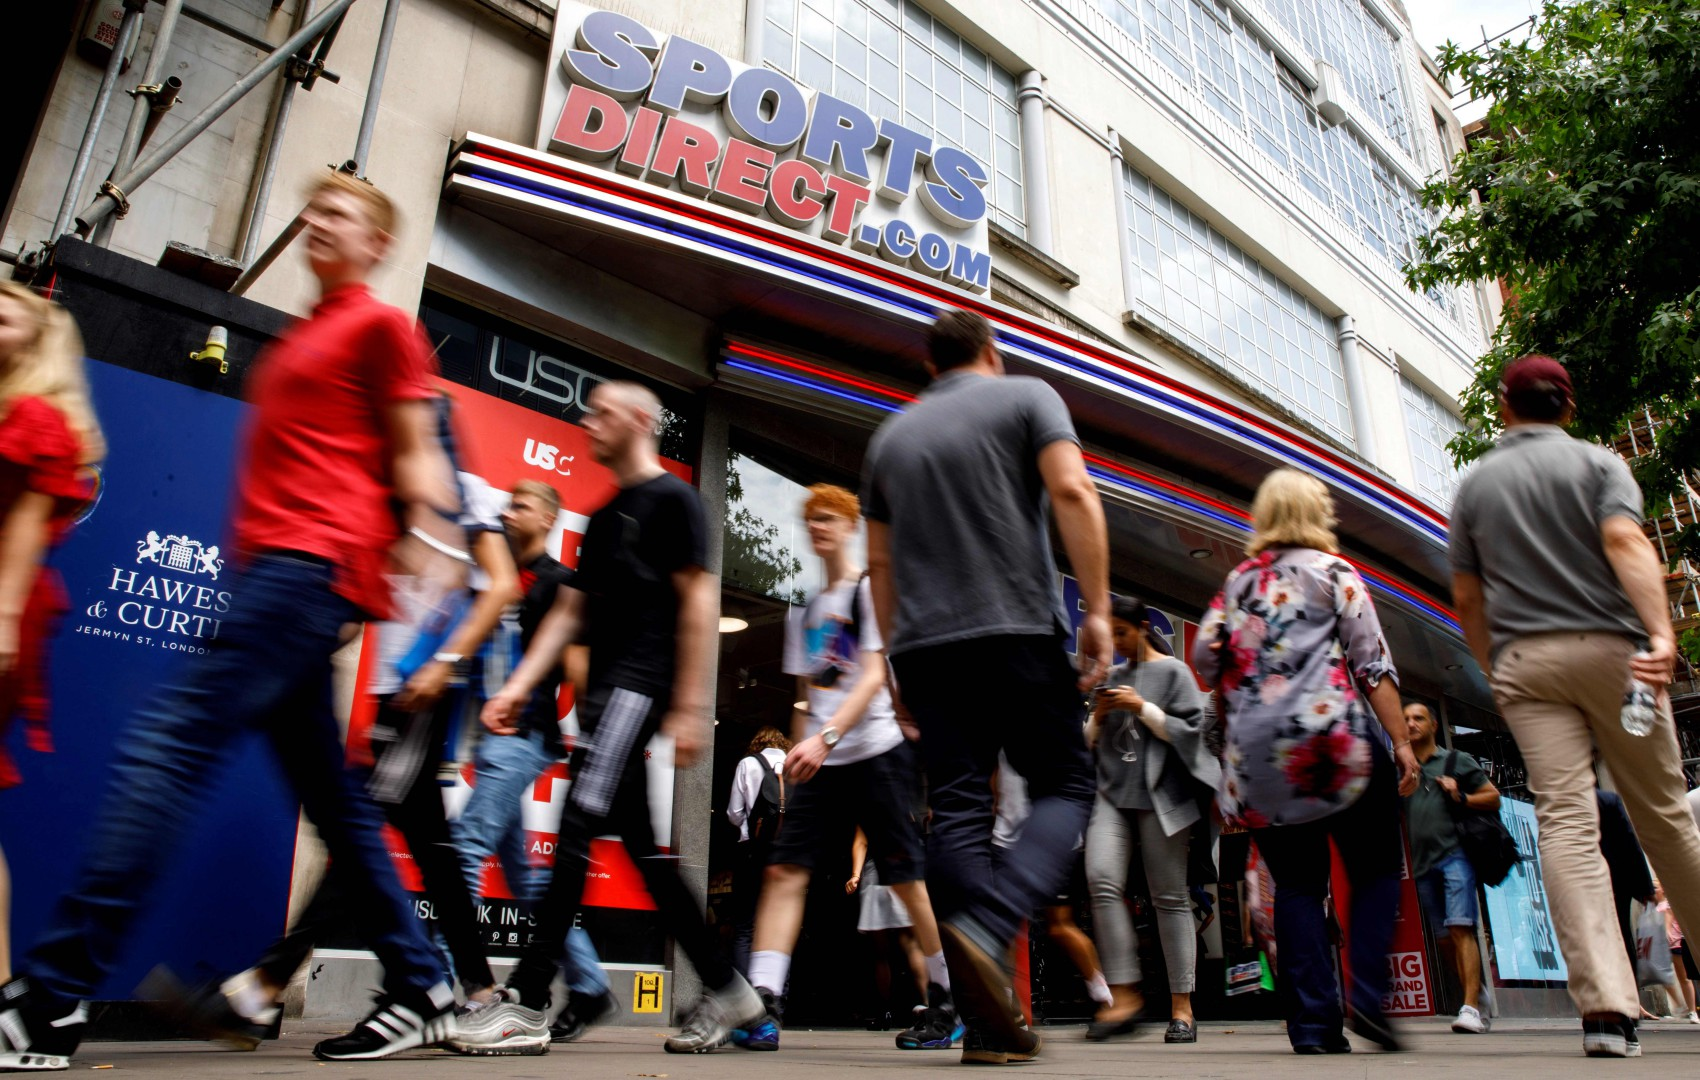 Shoppers walk past a Sports Direct shop on Oxford Street in central London on July 19, 2018. Sports Direct Thursday reported a 72.5 percent drop in pre-tax profits to £77.5 million for the year ending  April 29, 2018, down from £281.6 million the previous year. / AFP PHOTO / Tolga AKMEN